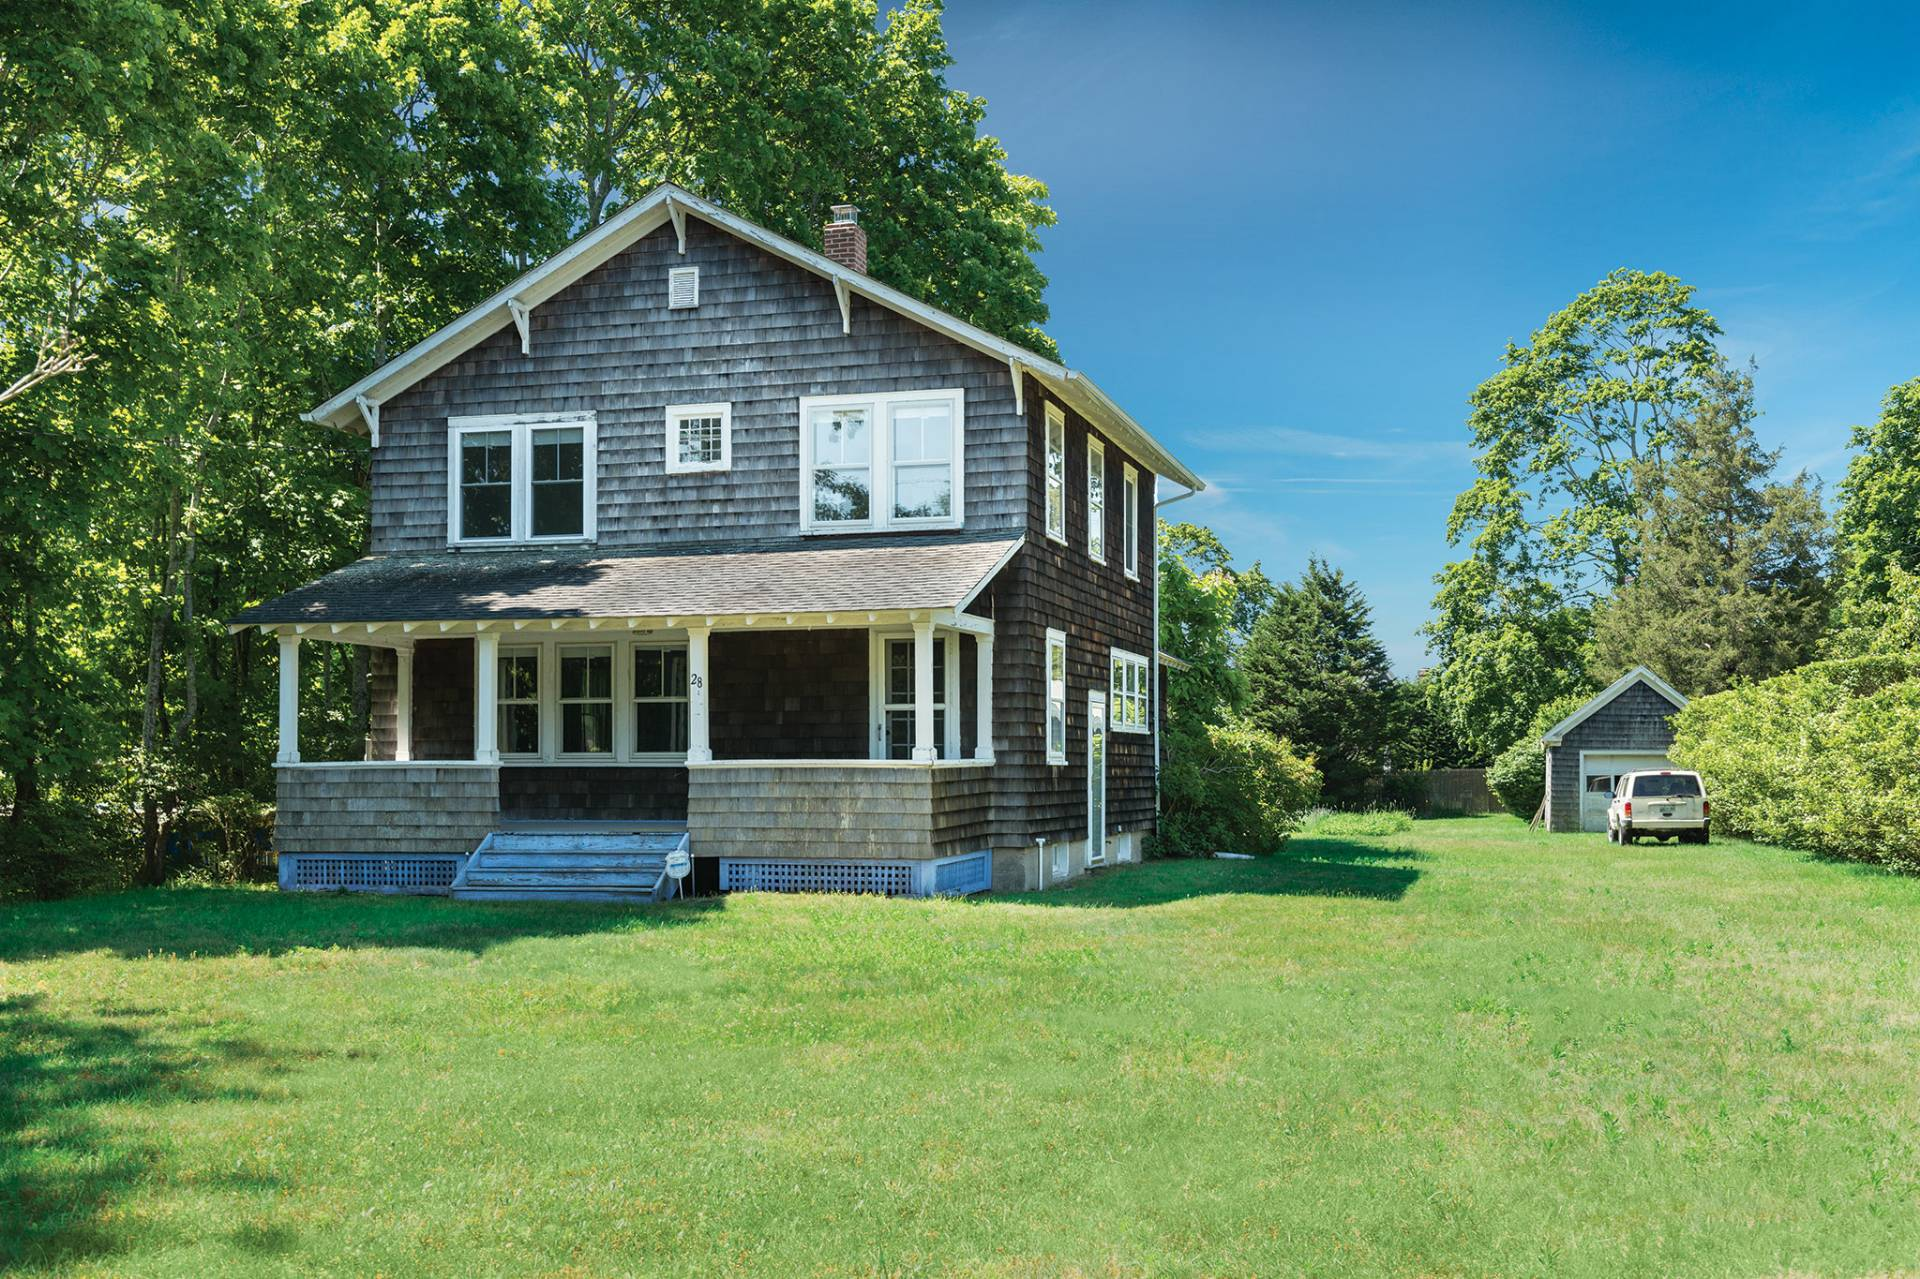 Single Family Home for Sale at Old World Charm East Quogue 28 Vail Avenue, East Quogue, New York